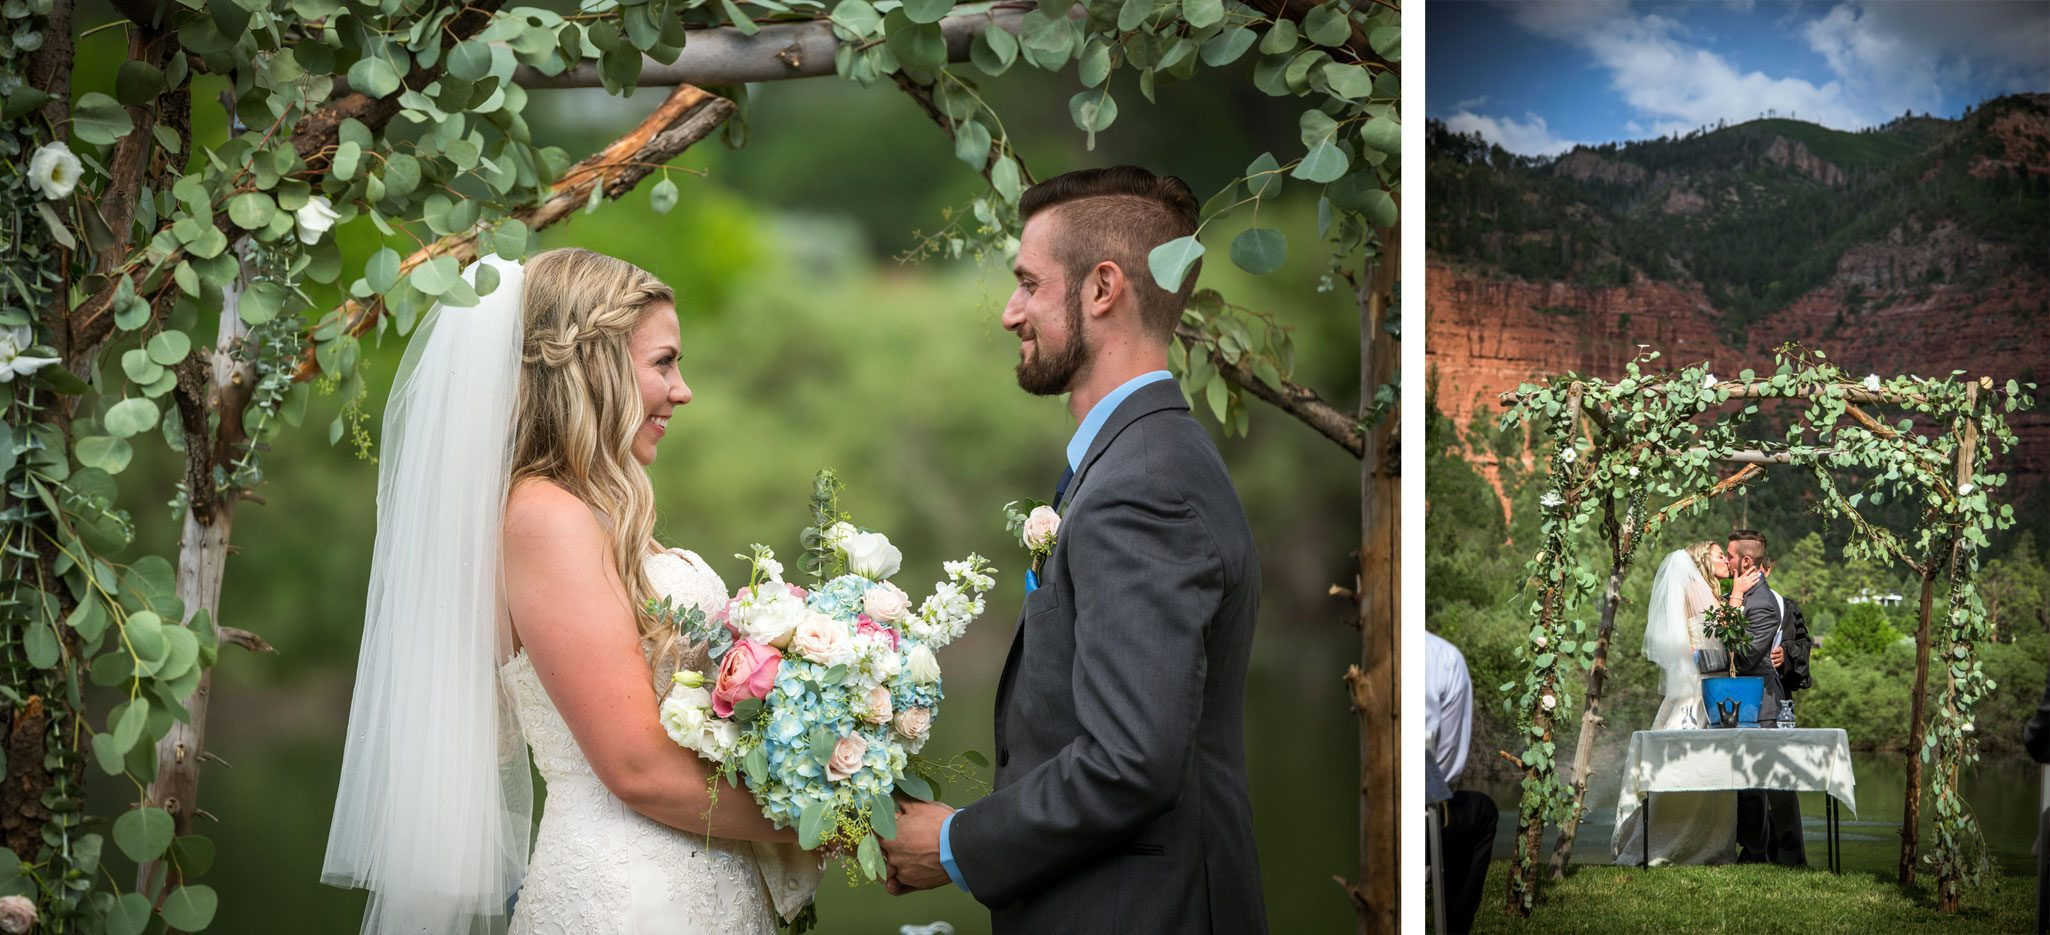 Ceremony | Weddings at River Bend Ranch, Durango